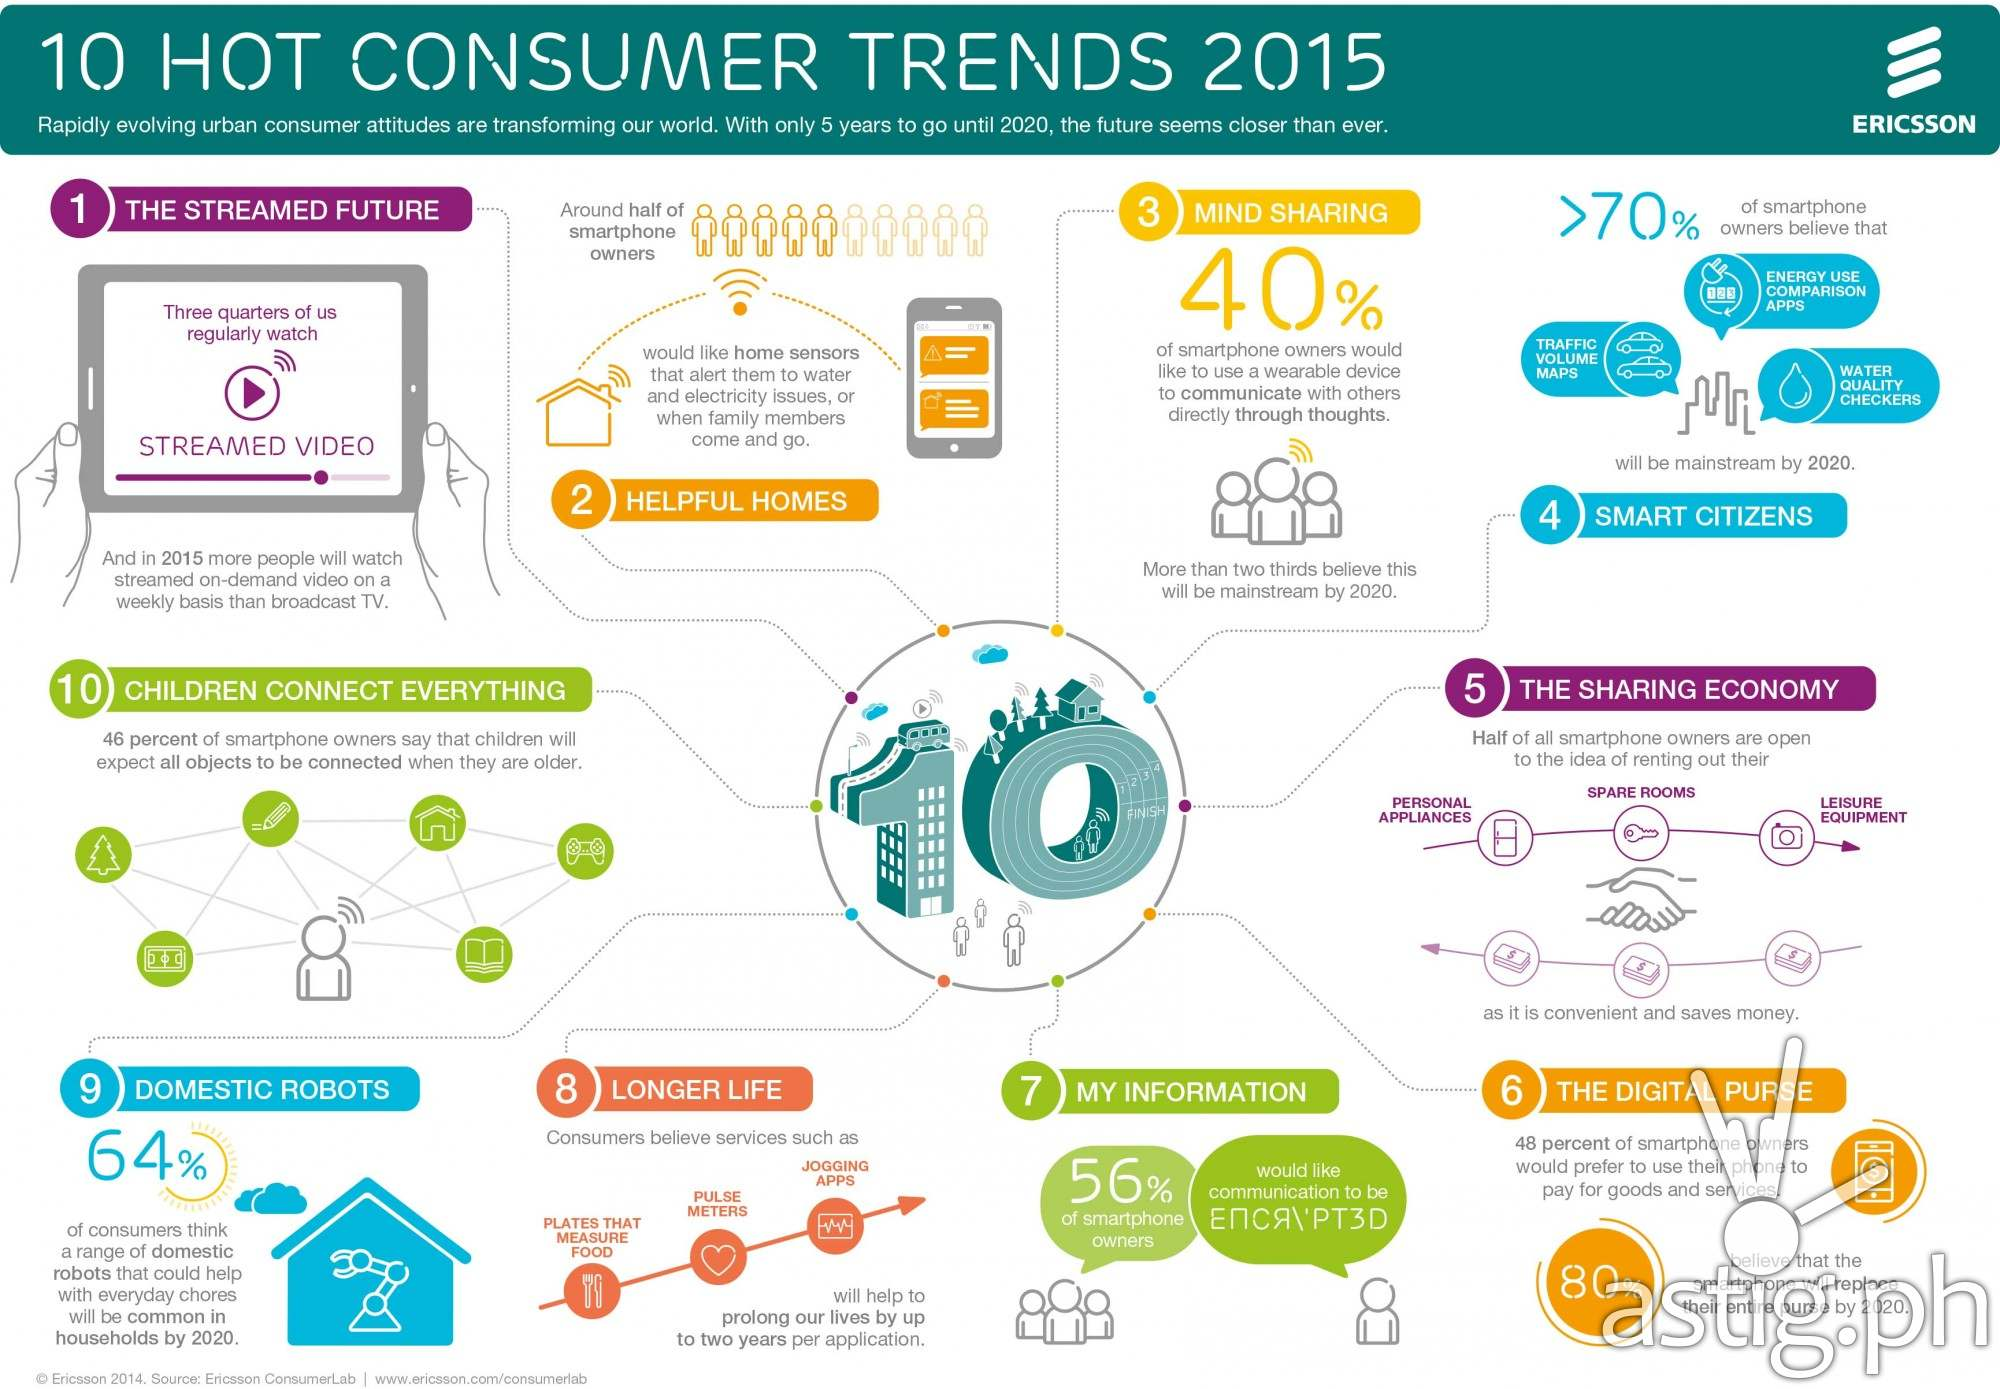 10 hot consumer trends for 2015 [infographic]